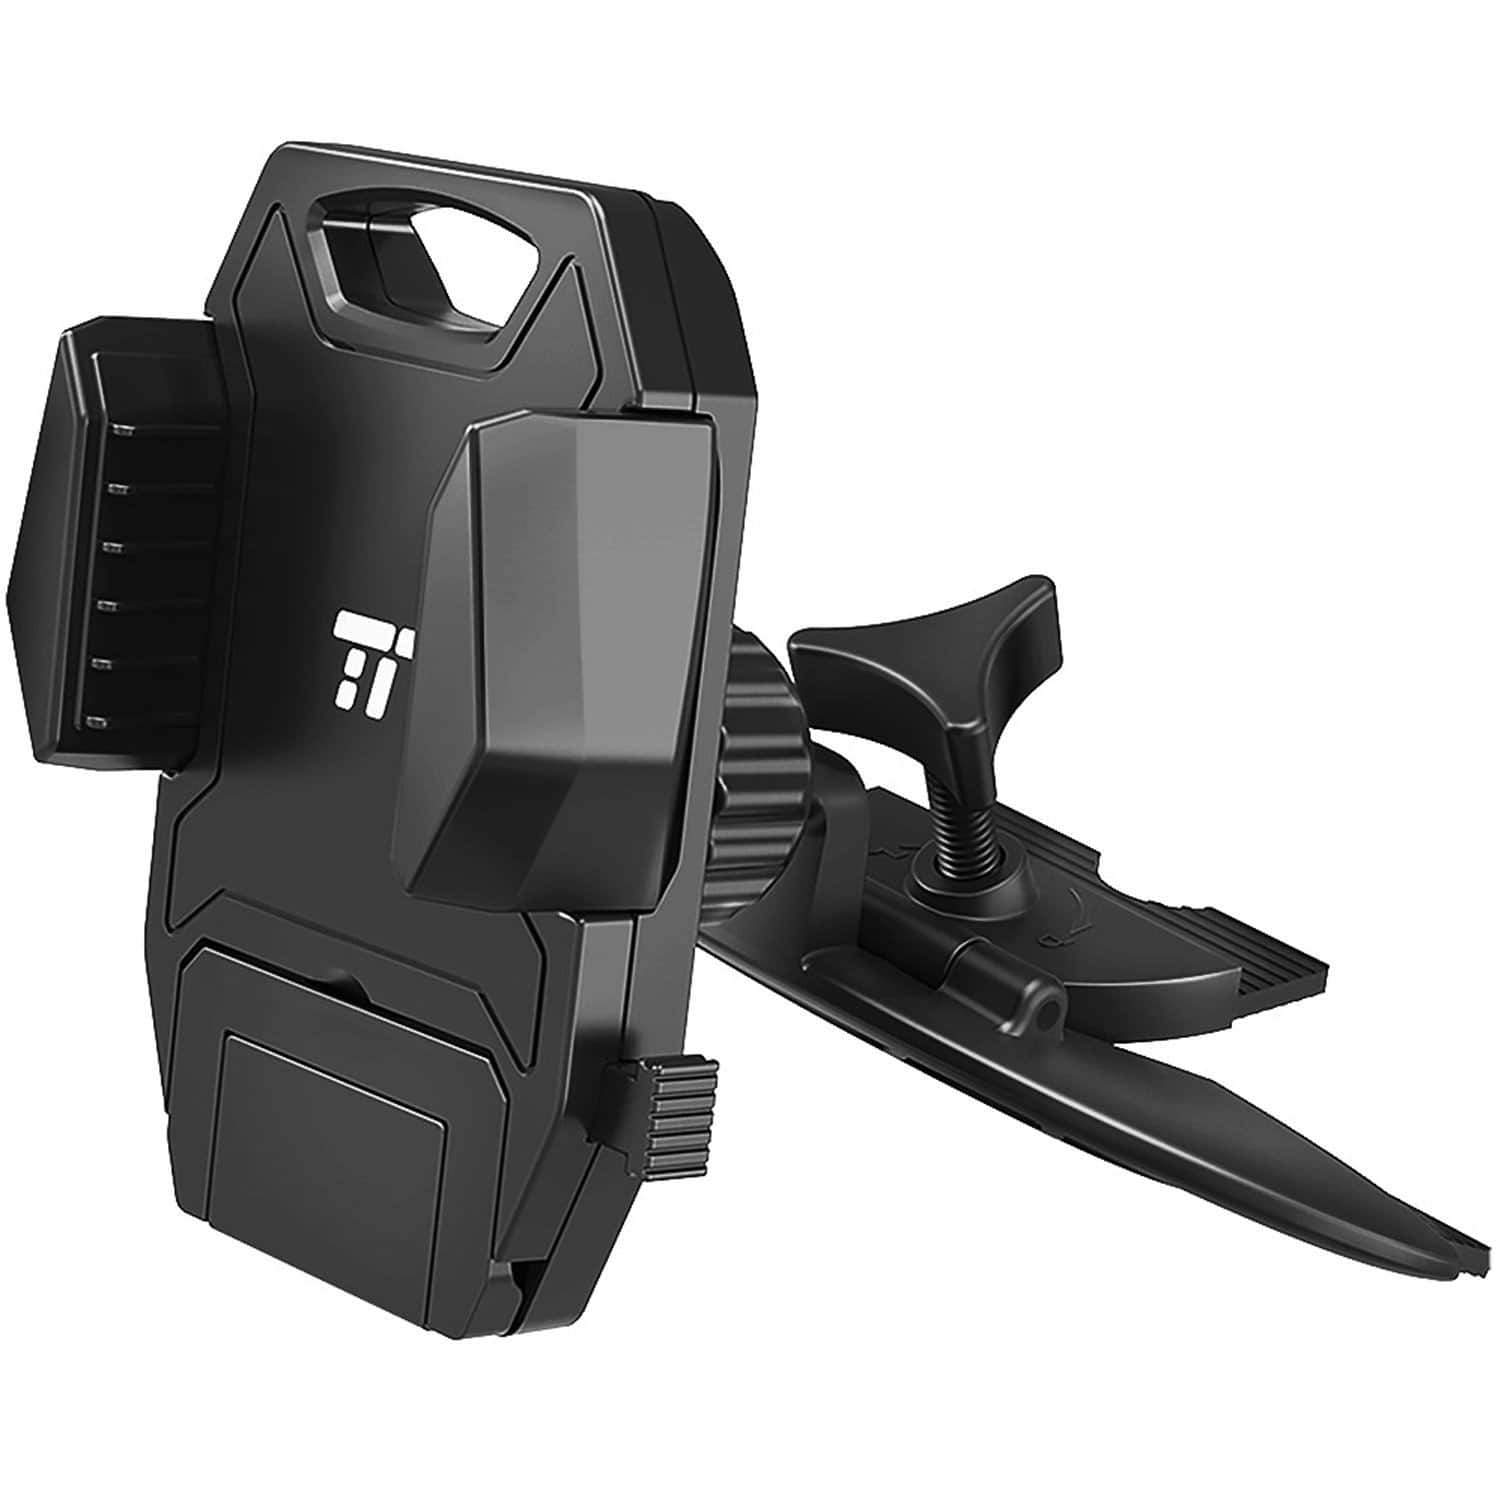 Car Phone Mount for CD Player Slot, TaoTronics Phone Holder for $4.40